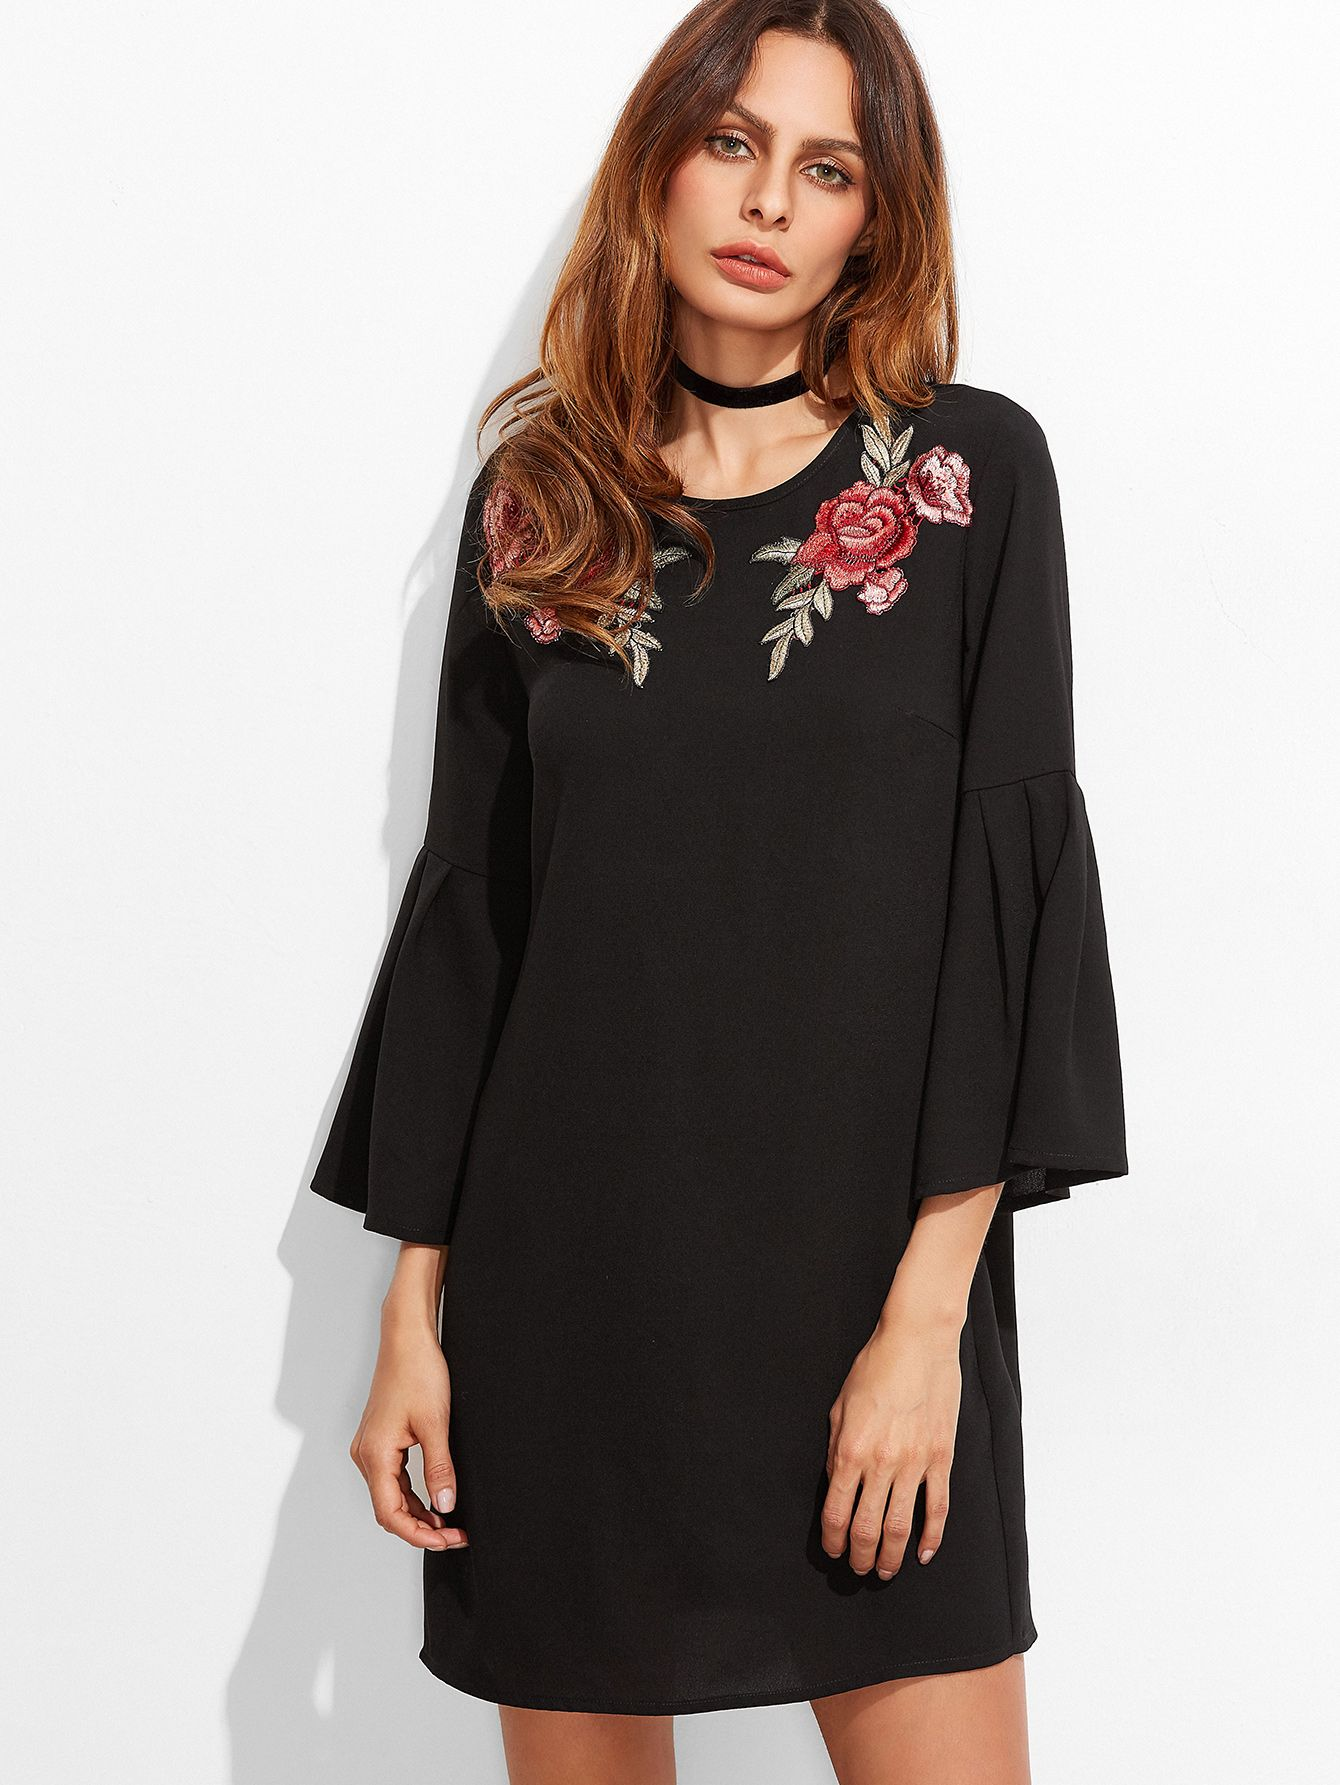 3f59a27acfc9b Online shopping for Black Embroidered Rose Applique Bell Sleeve Tunic Dress  from a great selection of women's fashion clothing & more at MakeMeChic.COM.